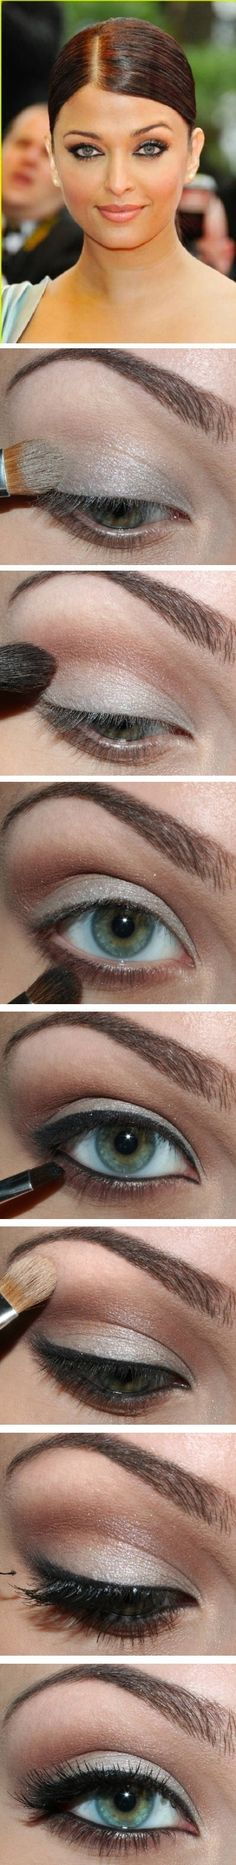 Aishwarya Rai eye makeup #makeup #beauty #cosmetics #Christmas #thanksgiving #Holiday #quote